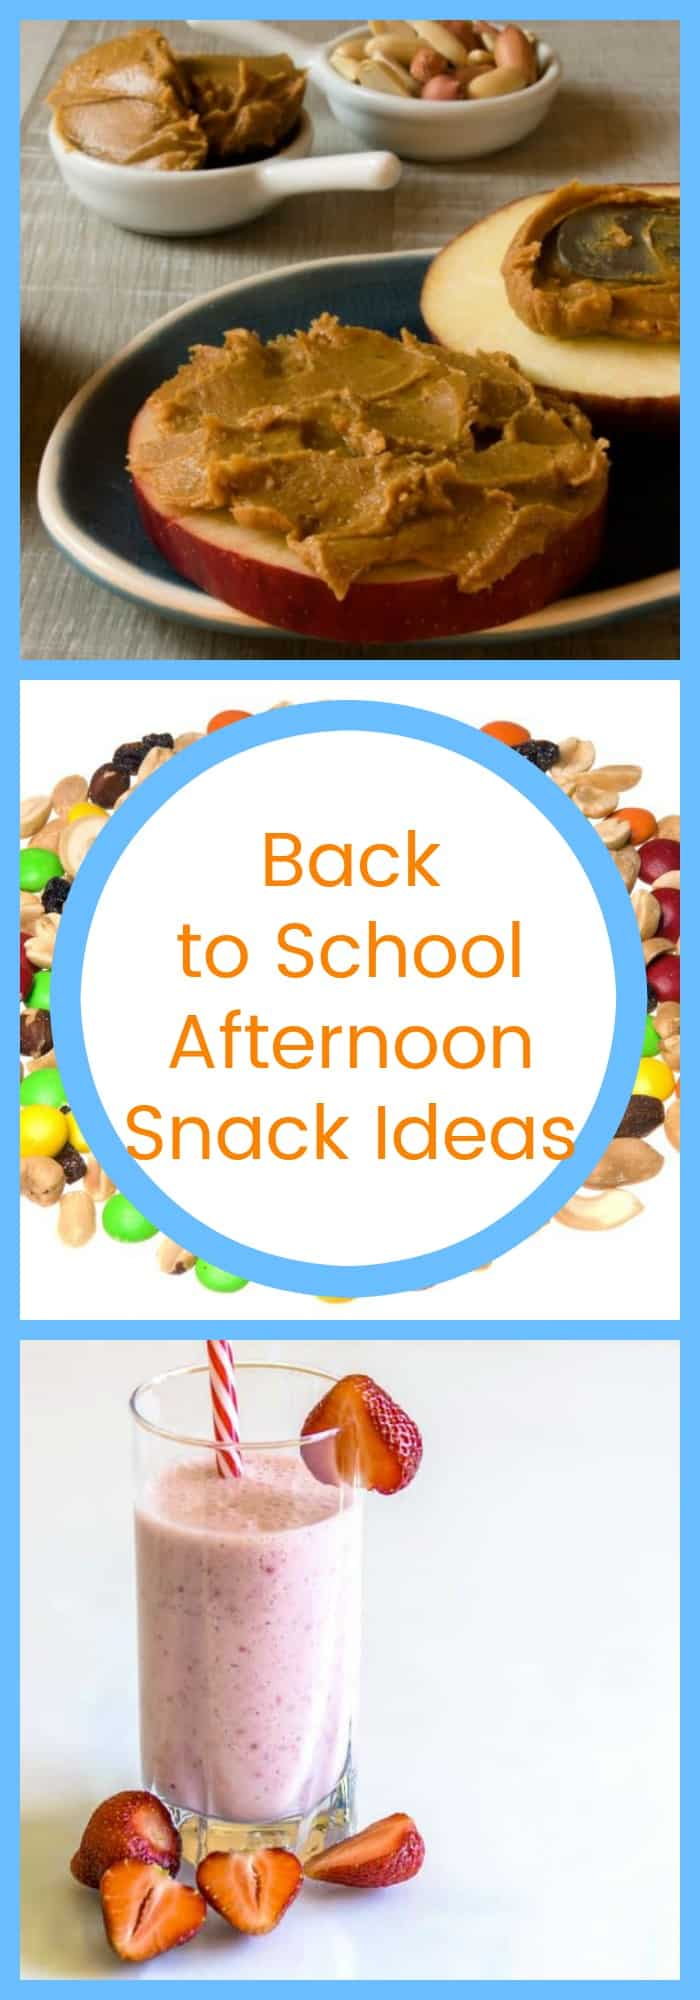 Back to School Afternoon Snack Ideas